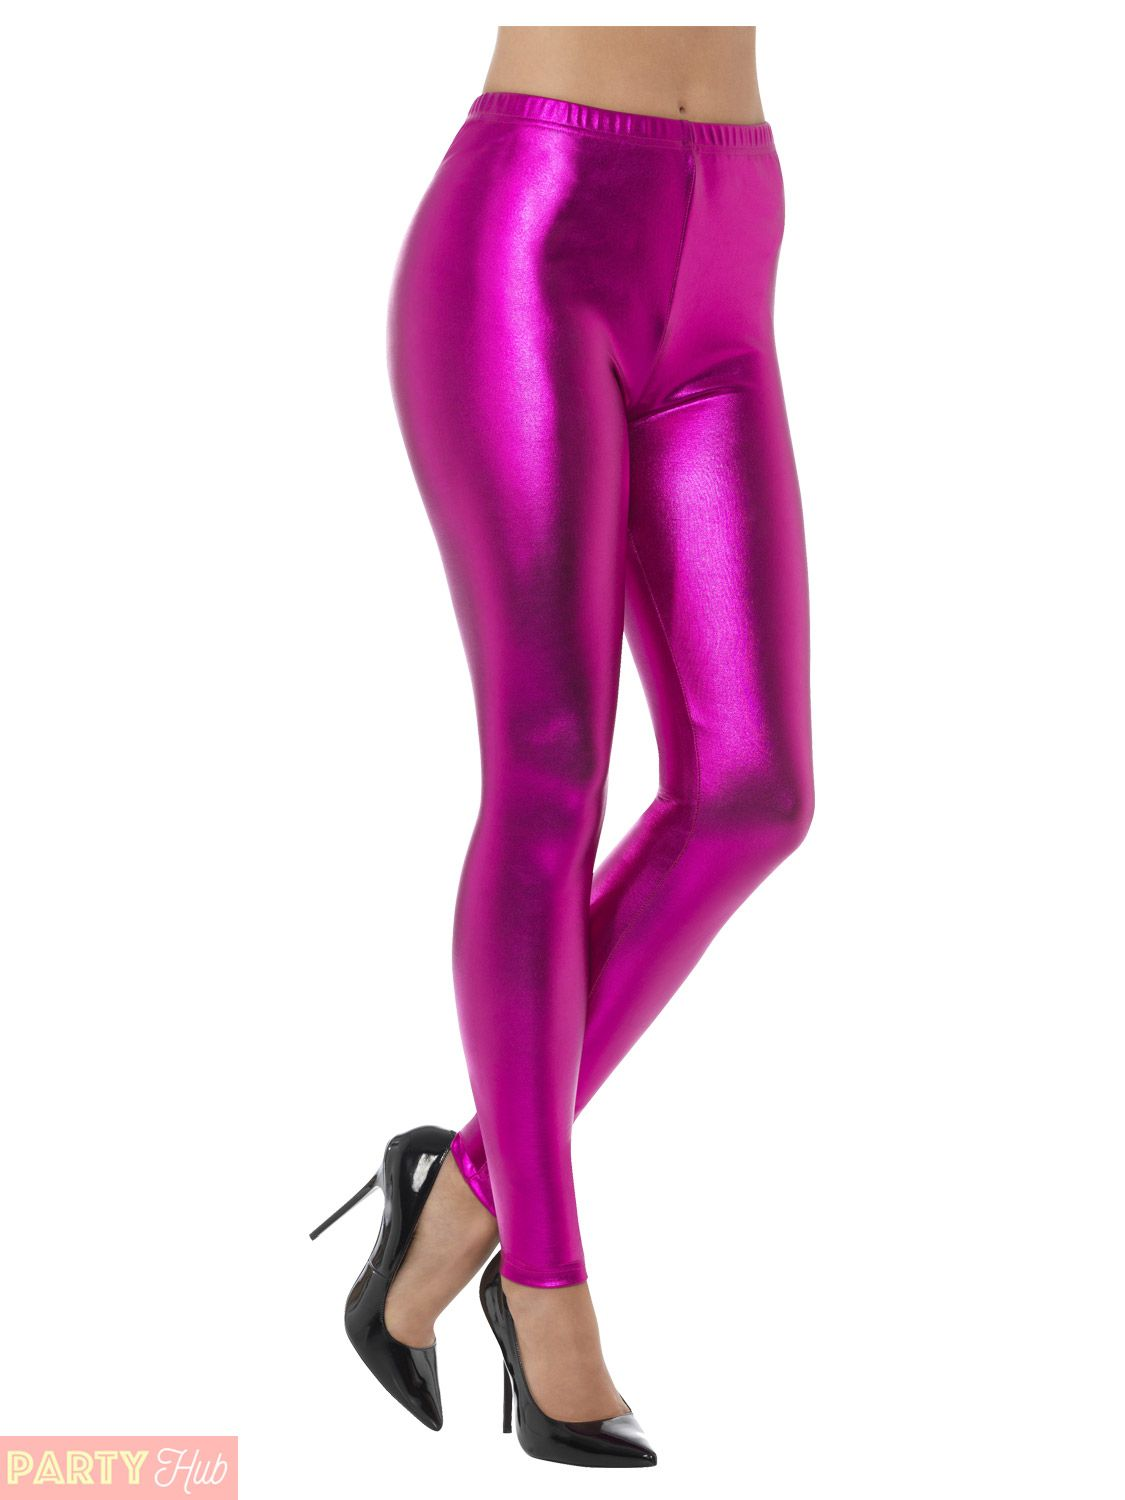 8dbba6e5289 Ladies-80s-Metallic-Leggings -Adult-Disco-Fancy-Dress-Costume-Womens-Retro-Outfit